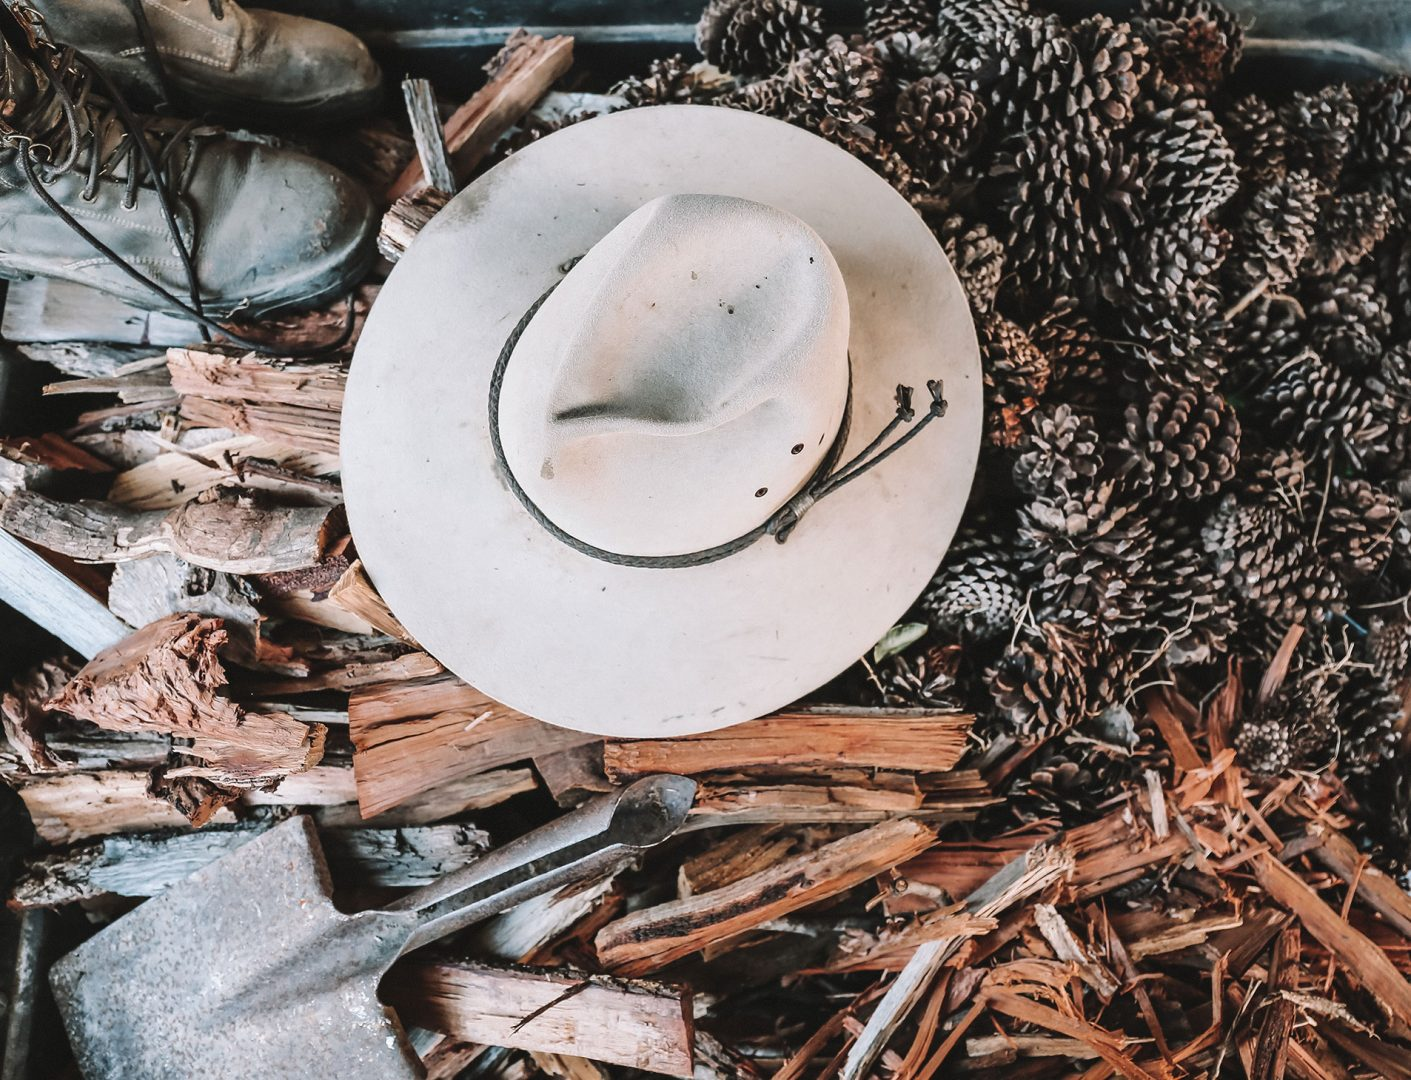 Akubra: Hats off to an Australian icon as we go behind the scenes